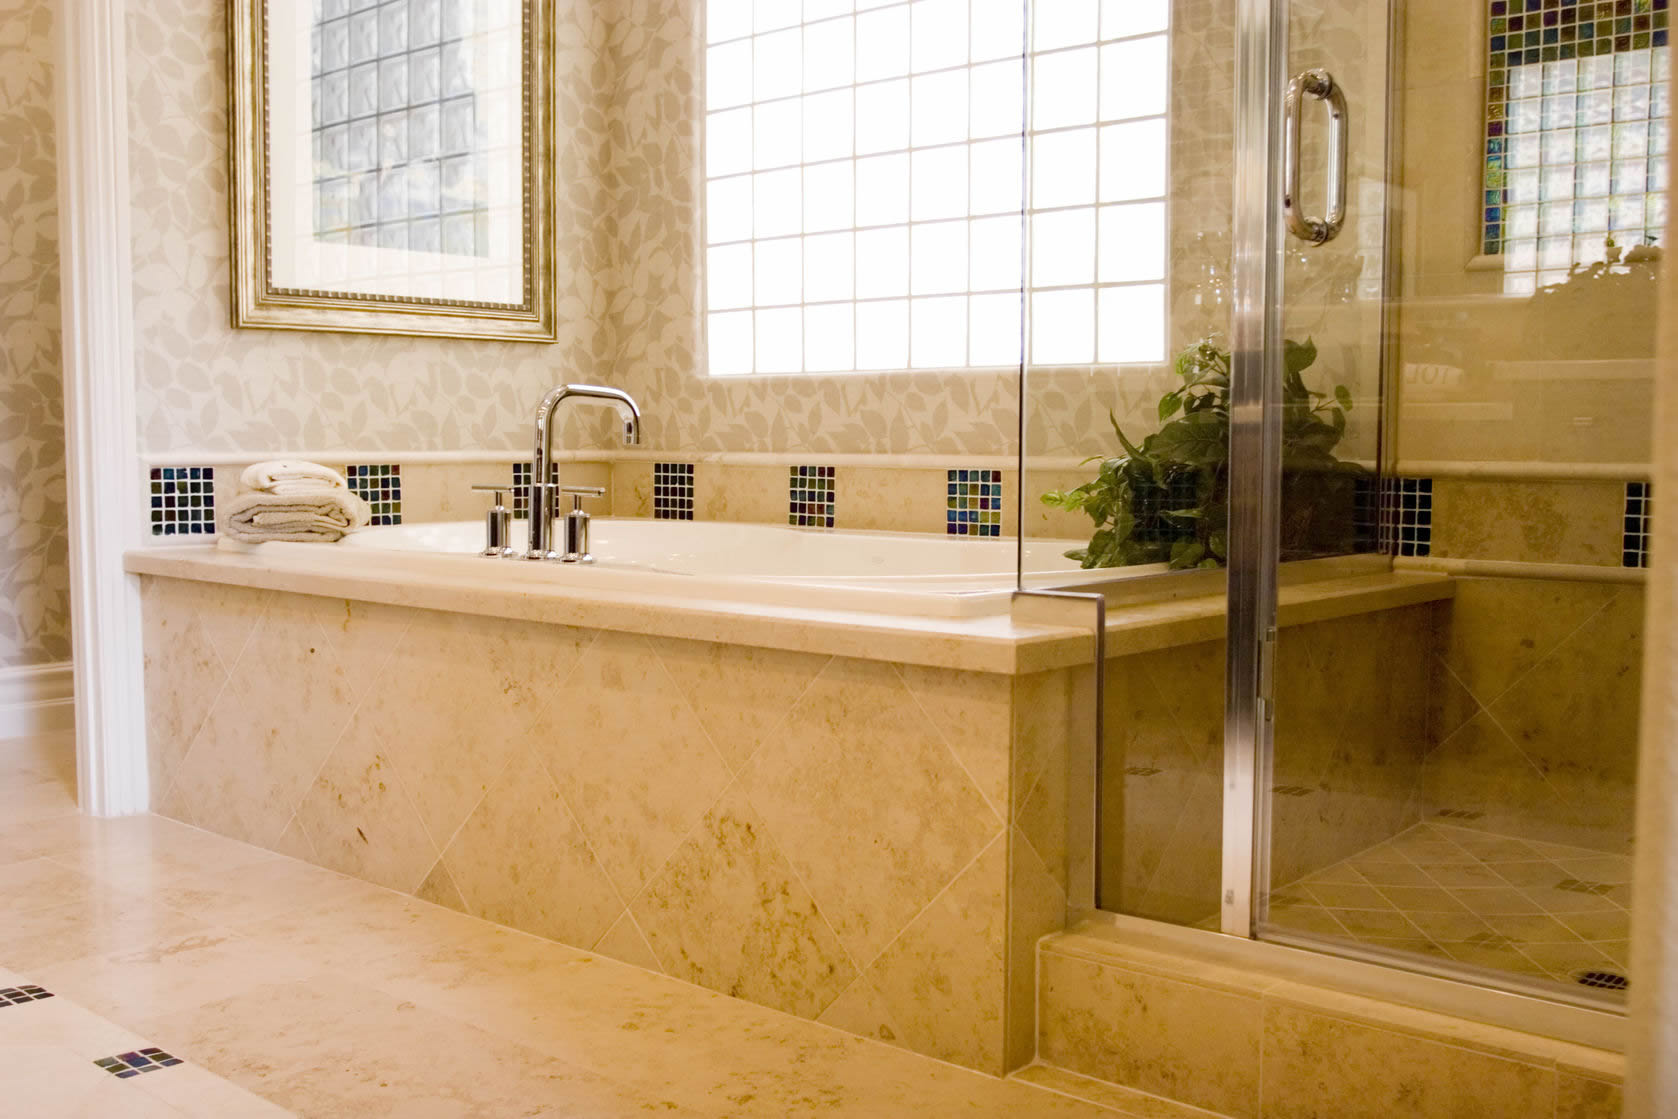 Exceptional Las Vegas Bathroom Remodeling. Bathtub Installation. Bathtub Installation.  840 False True True False True True False Auto False Ease In Out 300 Auto  False 0 ...